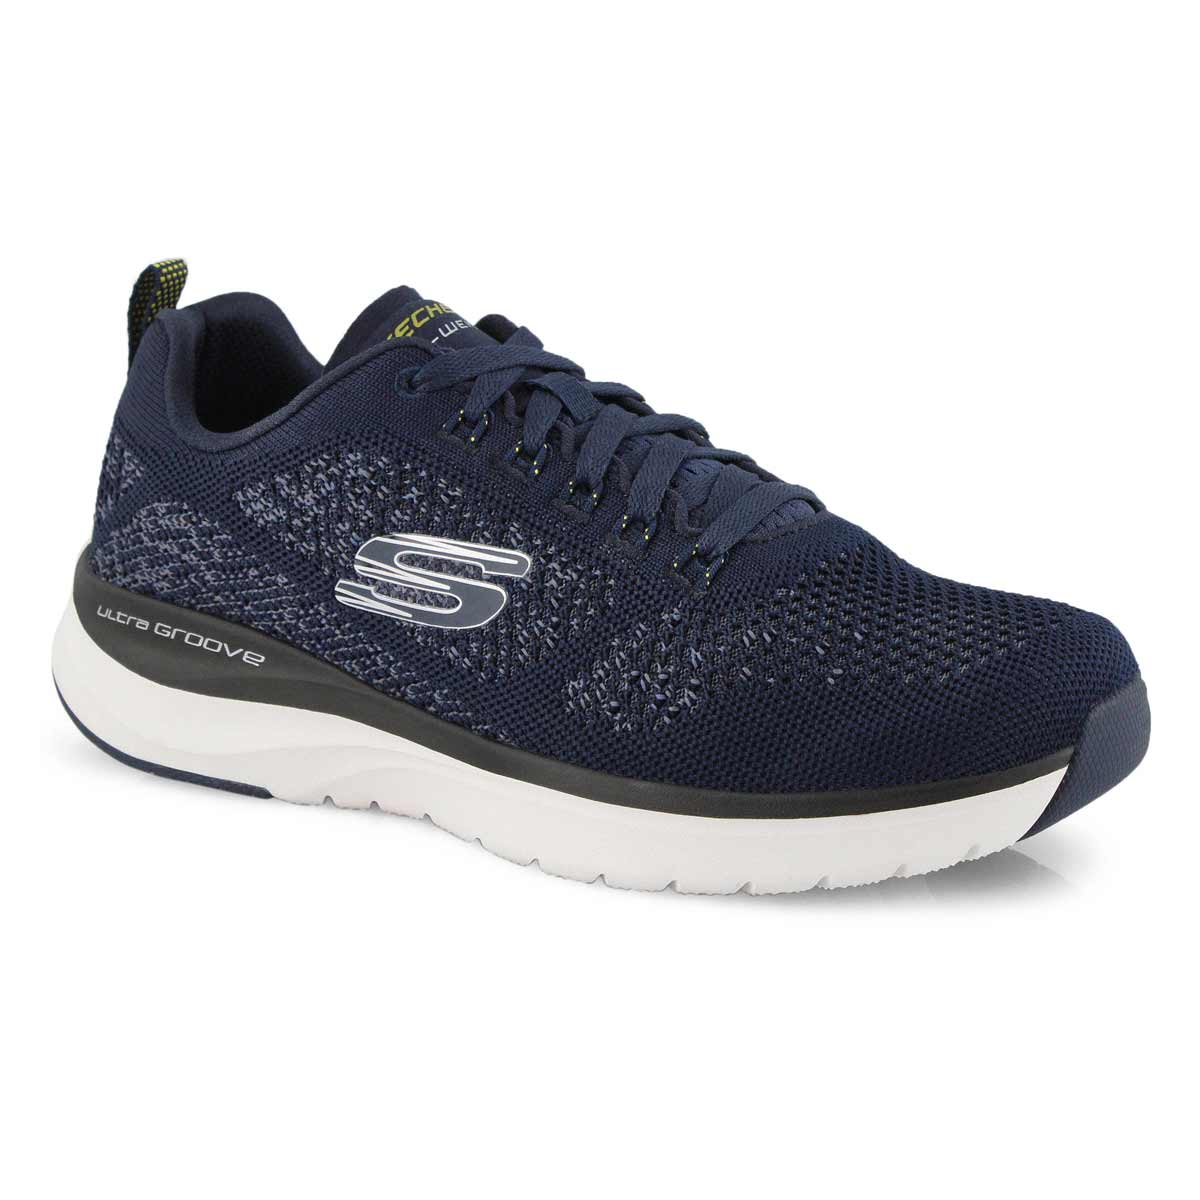 Men's Ultra Groove Running Shoes - Navy